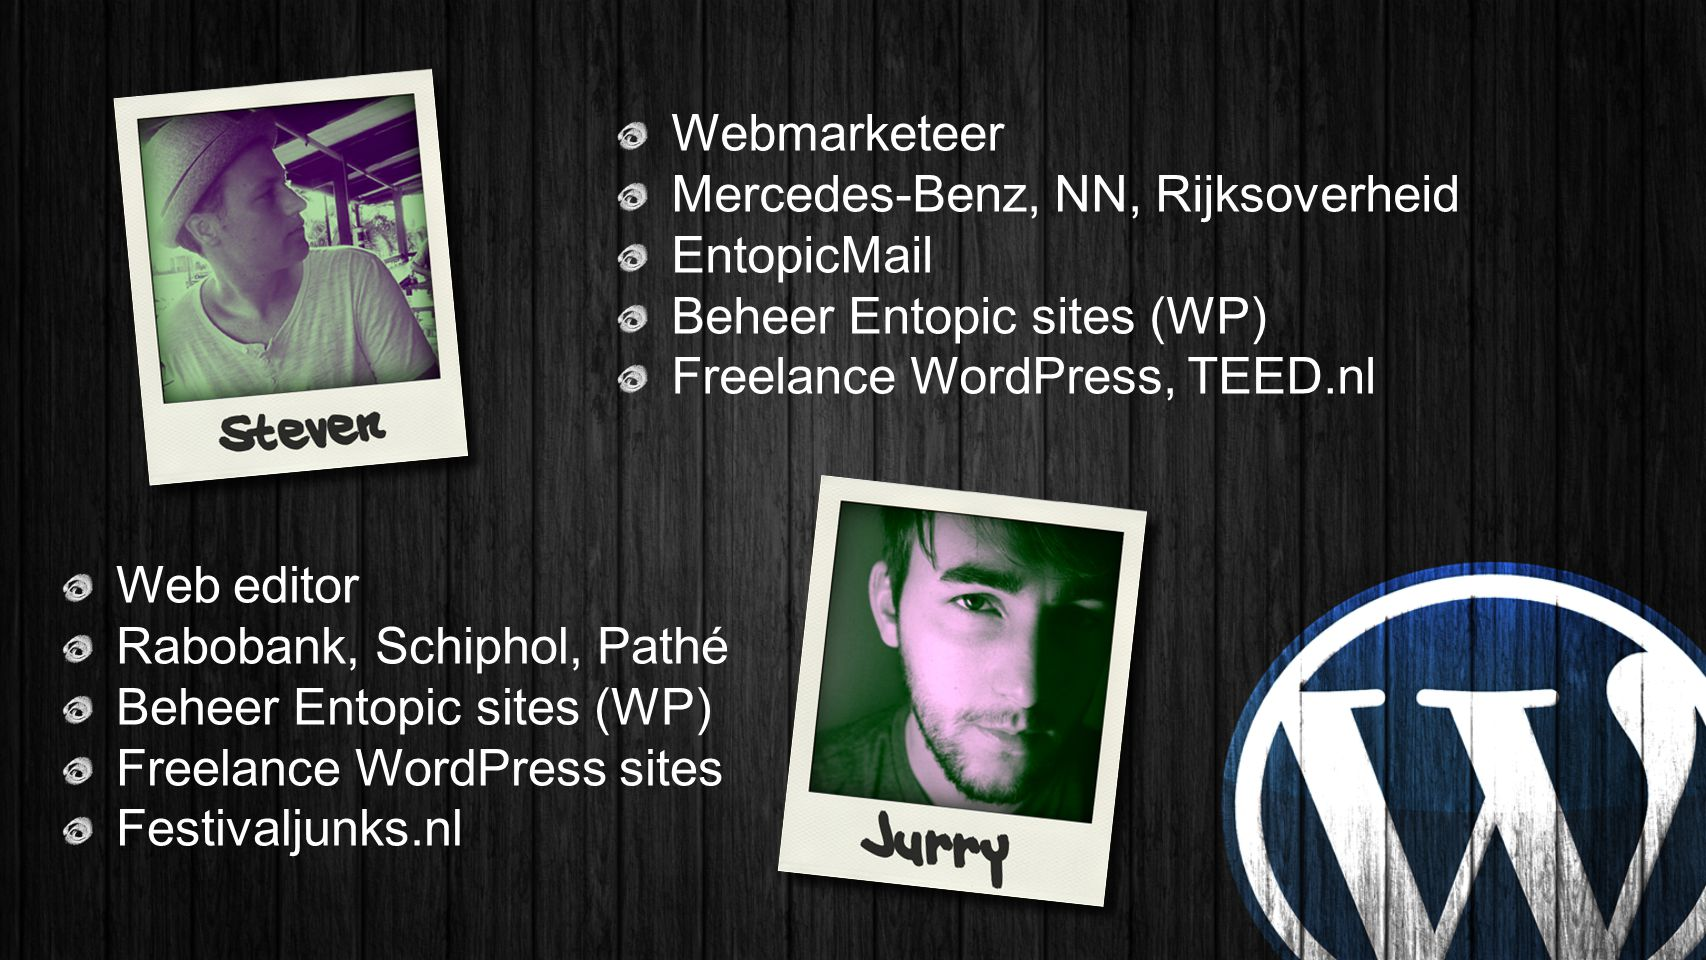 Webmarketeer Mercedes-Benz, NN, Rijksoverheid. EntopicMail. Beheer Entopic sites (WP) Freelance WordPress, TEED.nl.